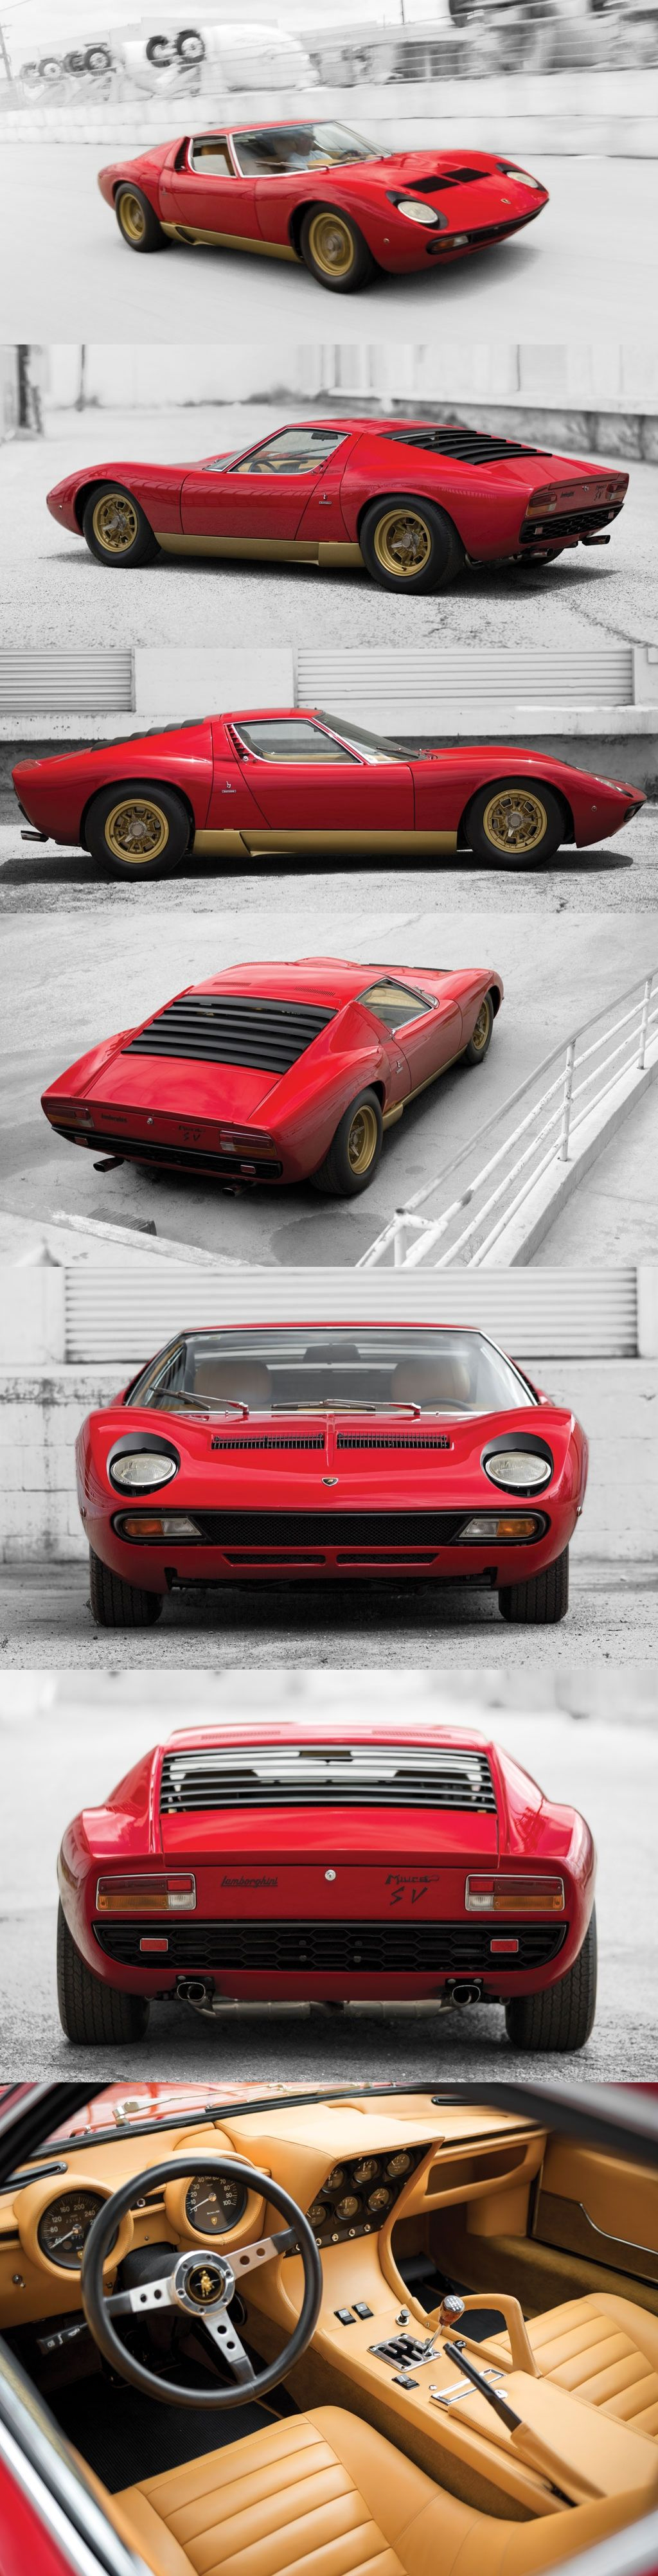 classic home chasers s post d sv miura lamborghini car poster driving mounted single bliss rear